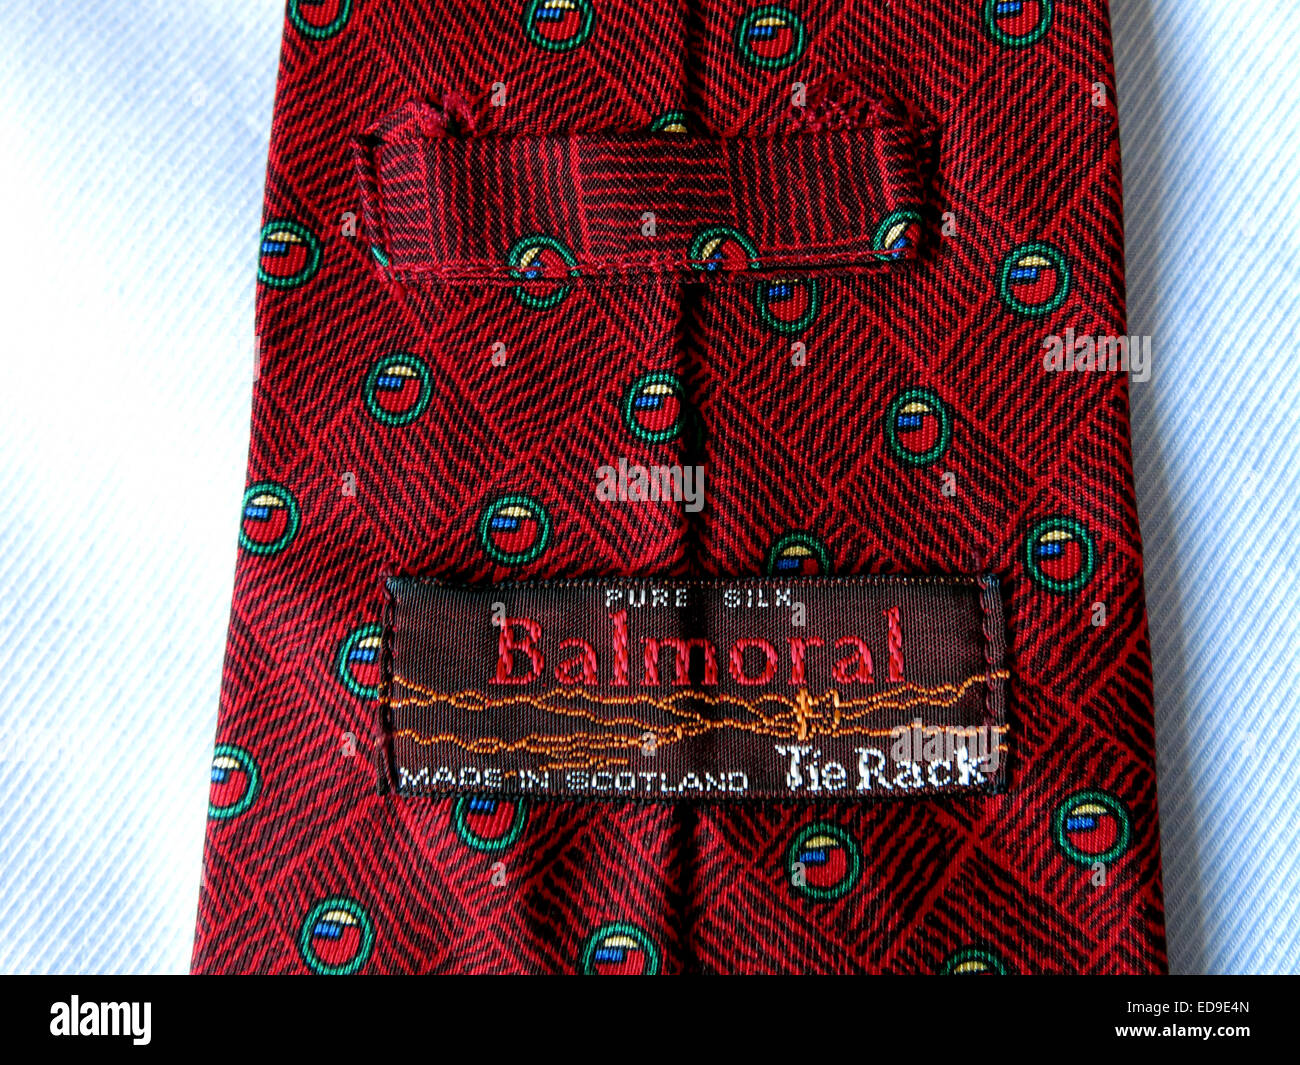 Interesting vintage Tie rack Balmoral Scotland tie, male neckware in silk Stock Photo